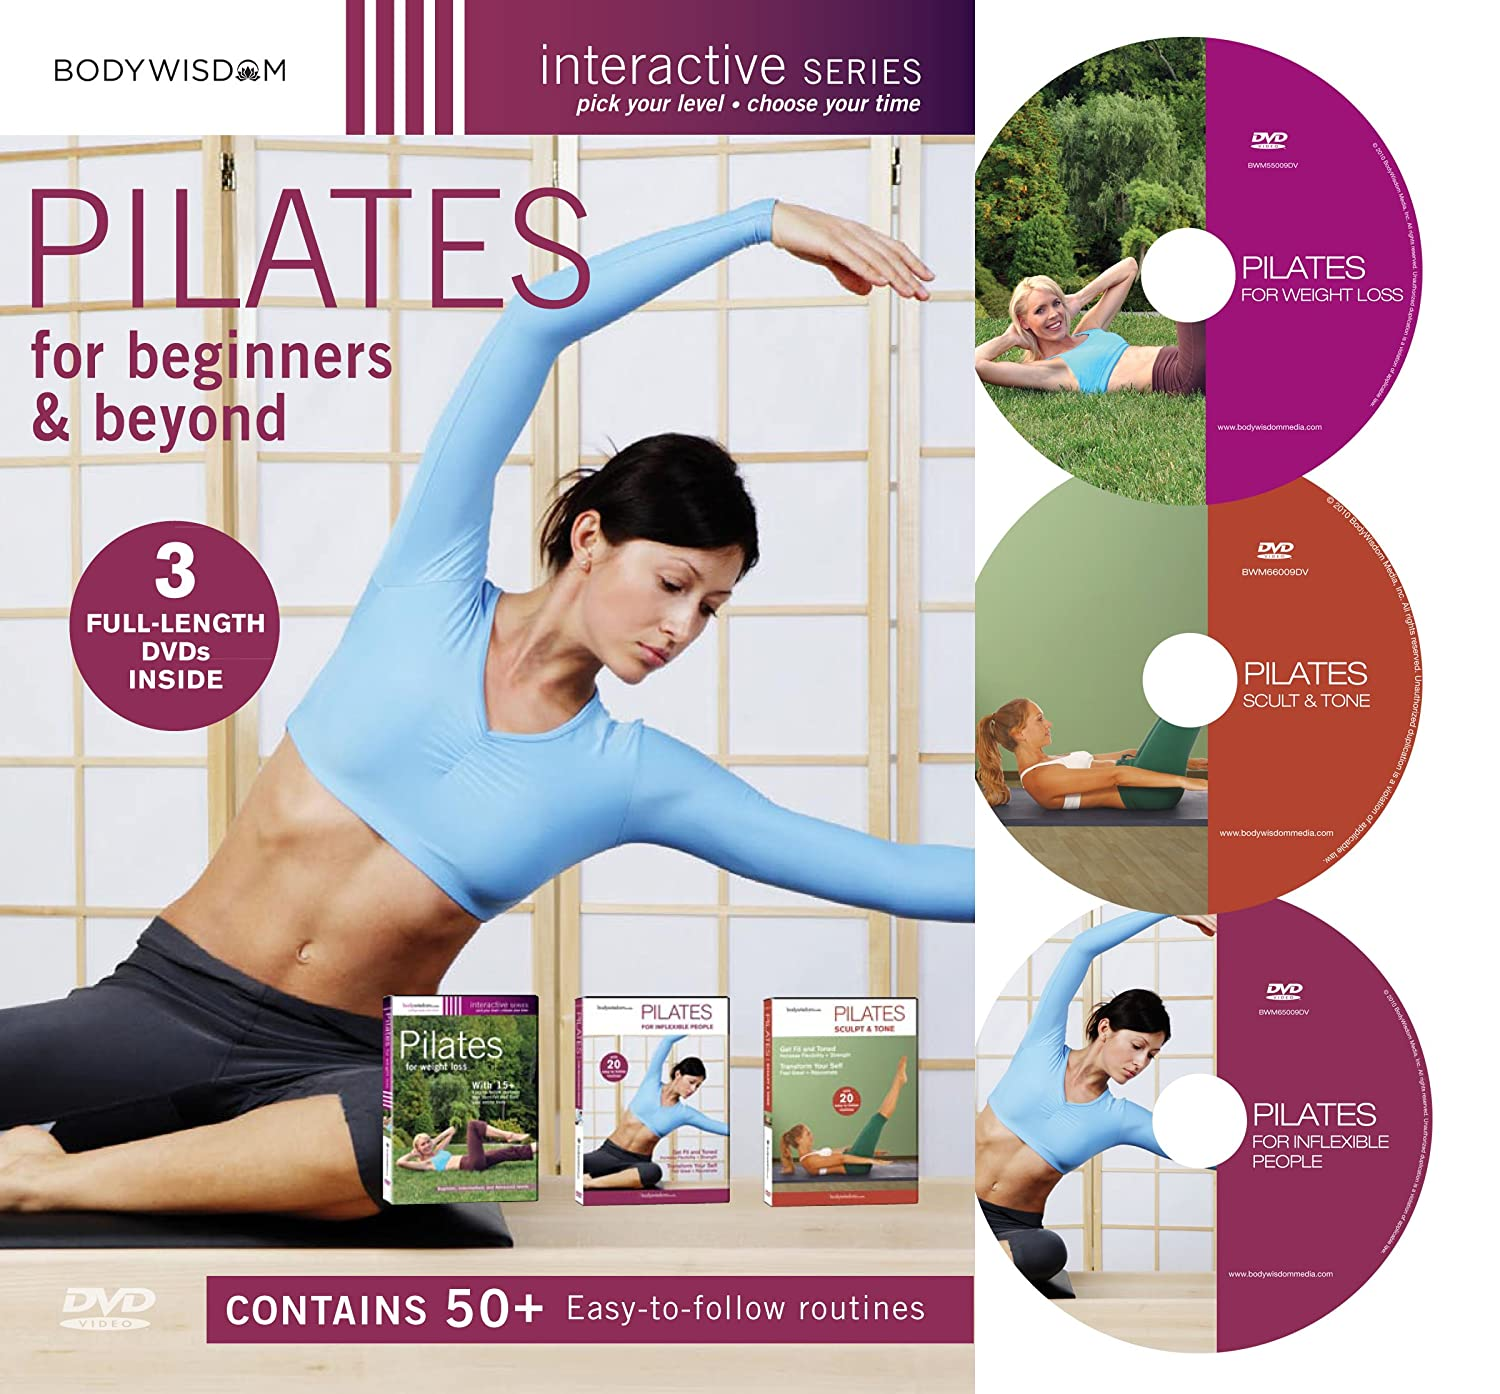 inflexible people. amazon.com: pilates for beginners \u0026 beyond boxed set (pilates inflexible people / complete weight loss sculpt and tone): s